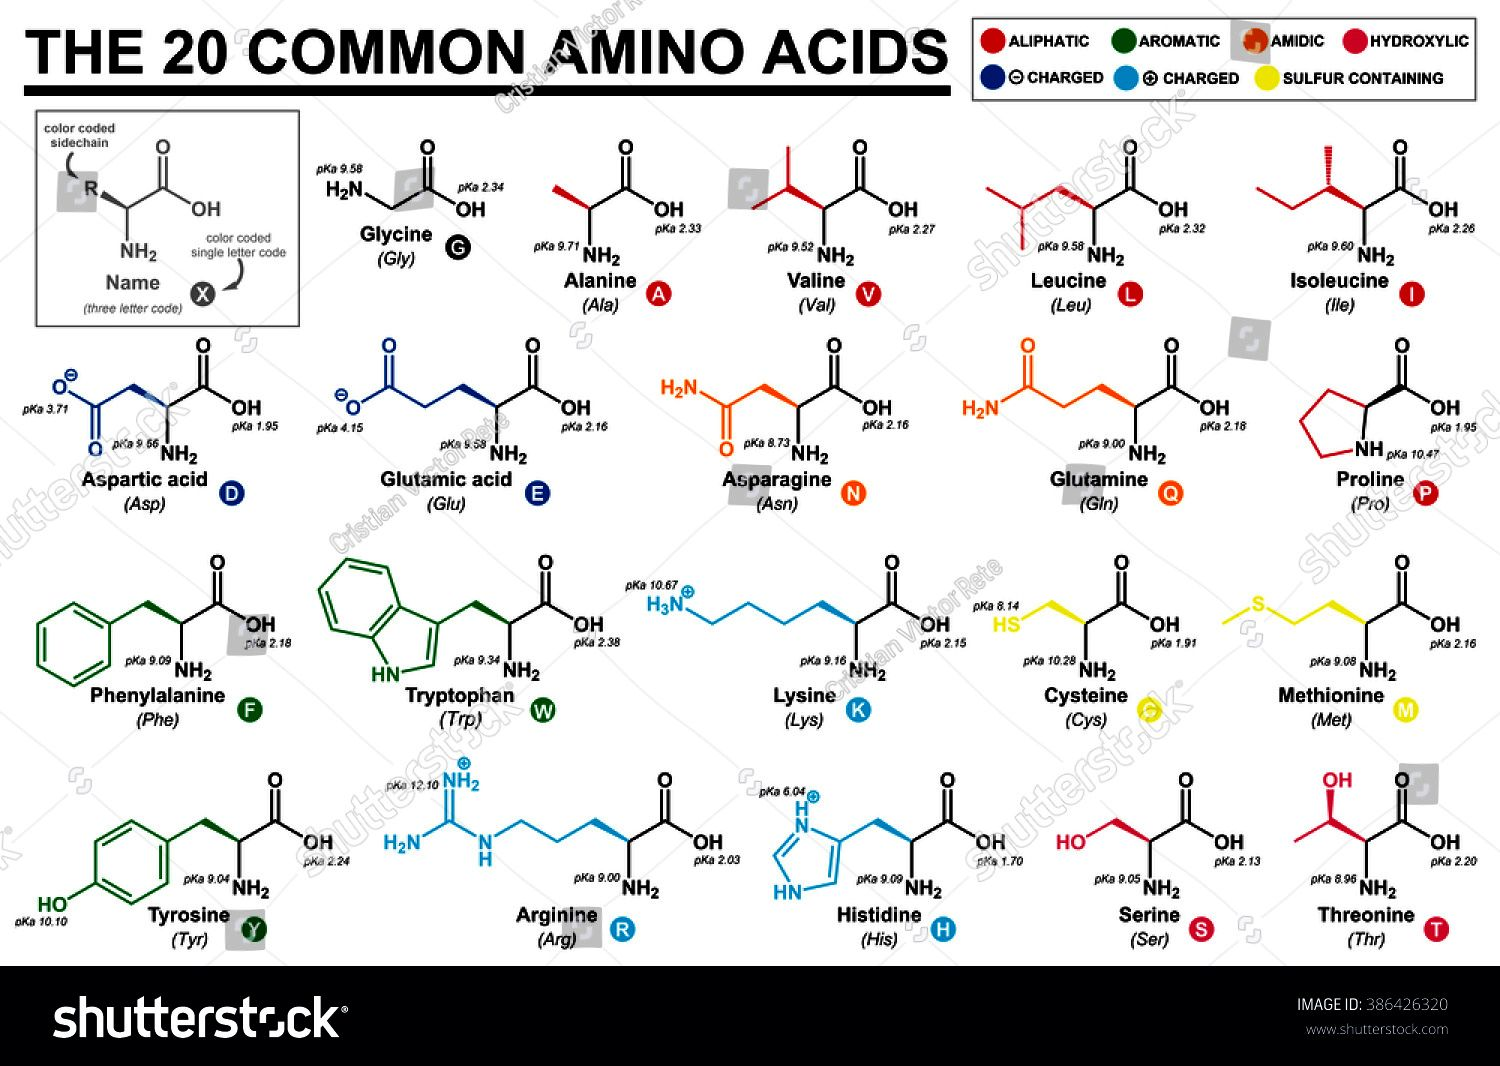 The 20 Common Amino Acids